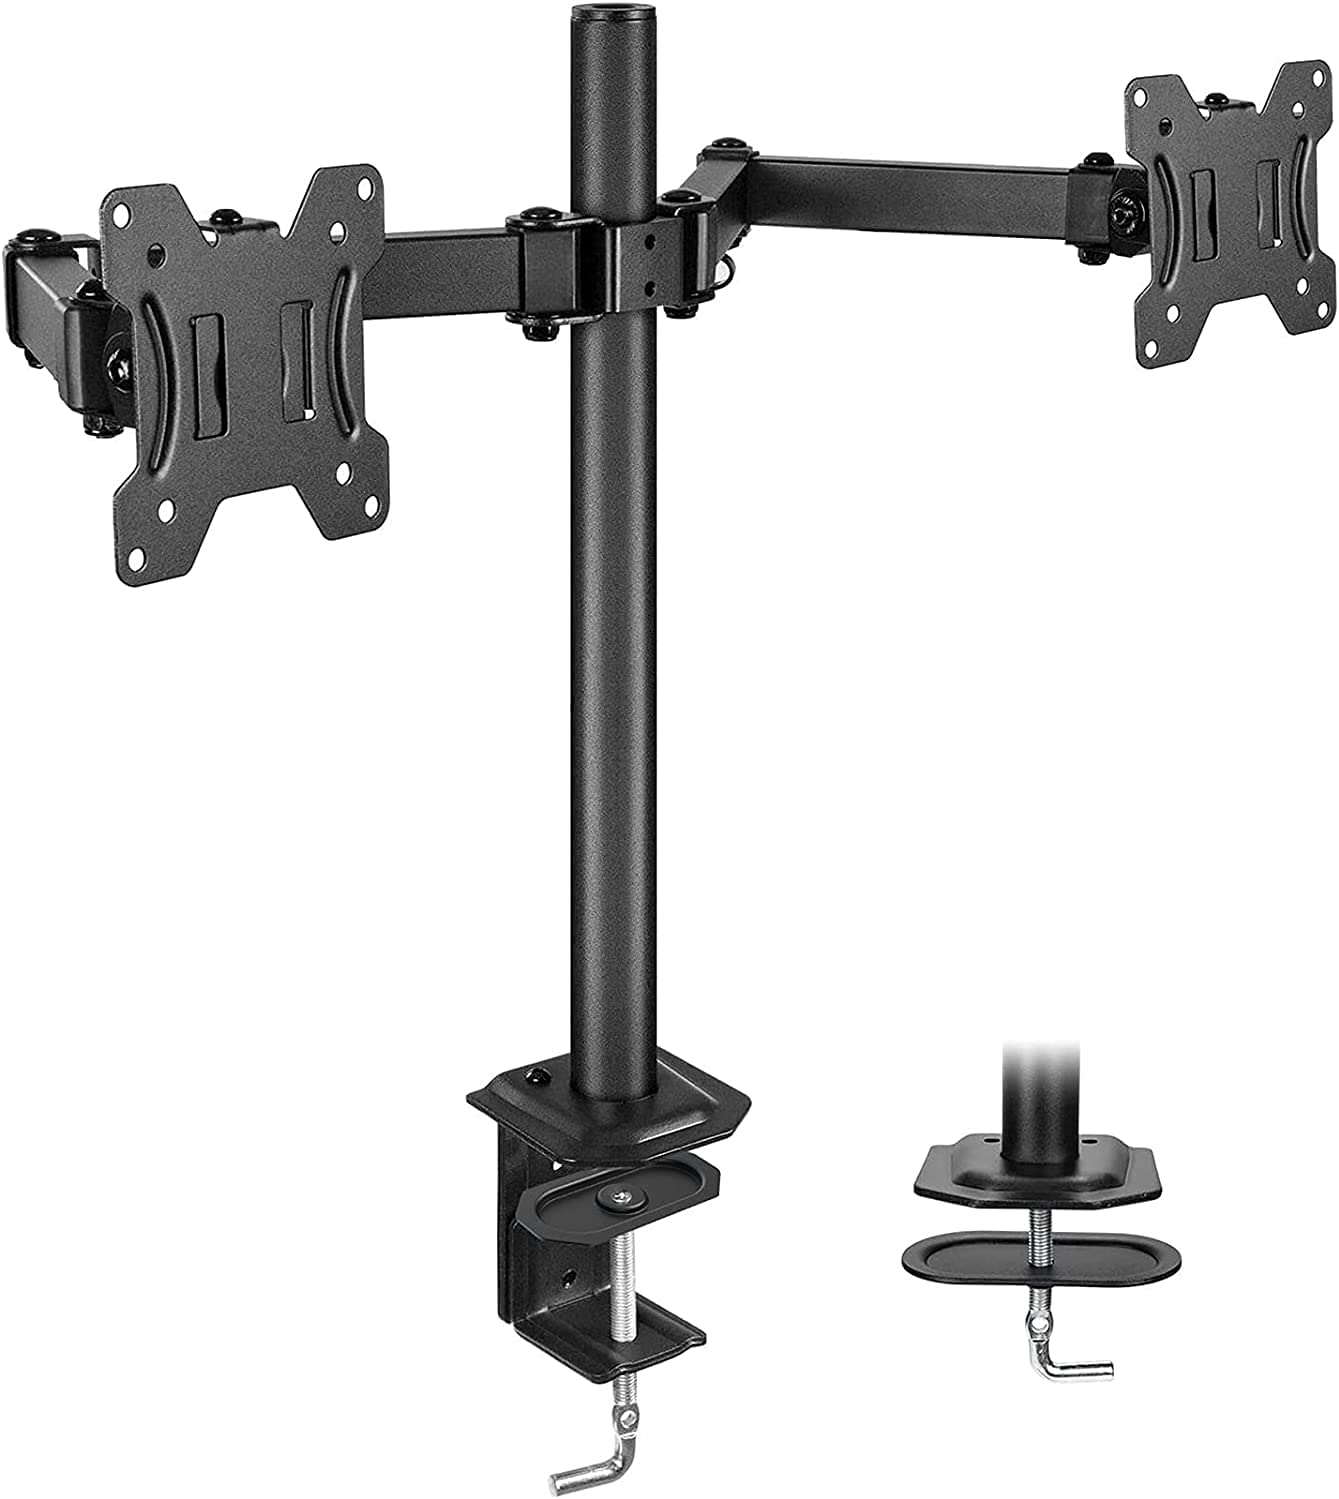 HUANUO Dual Monitor Stand for 13-27 inch Screens, Heavy Duty Fully Adjustable Monitor Desk Mount, VESA Mount with C Clamp, Each Arm Holds 4.4 to 22.4lbs